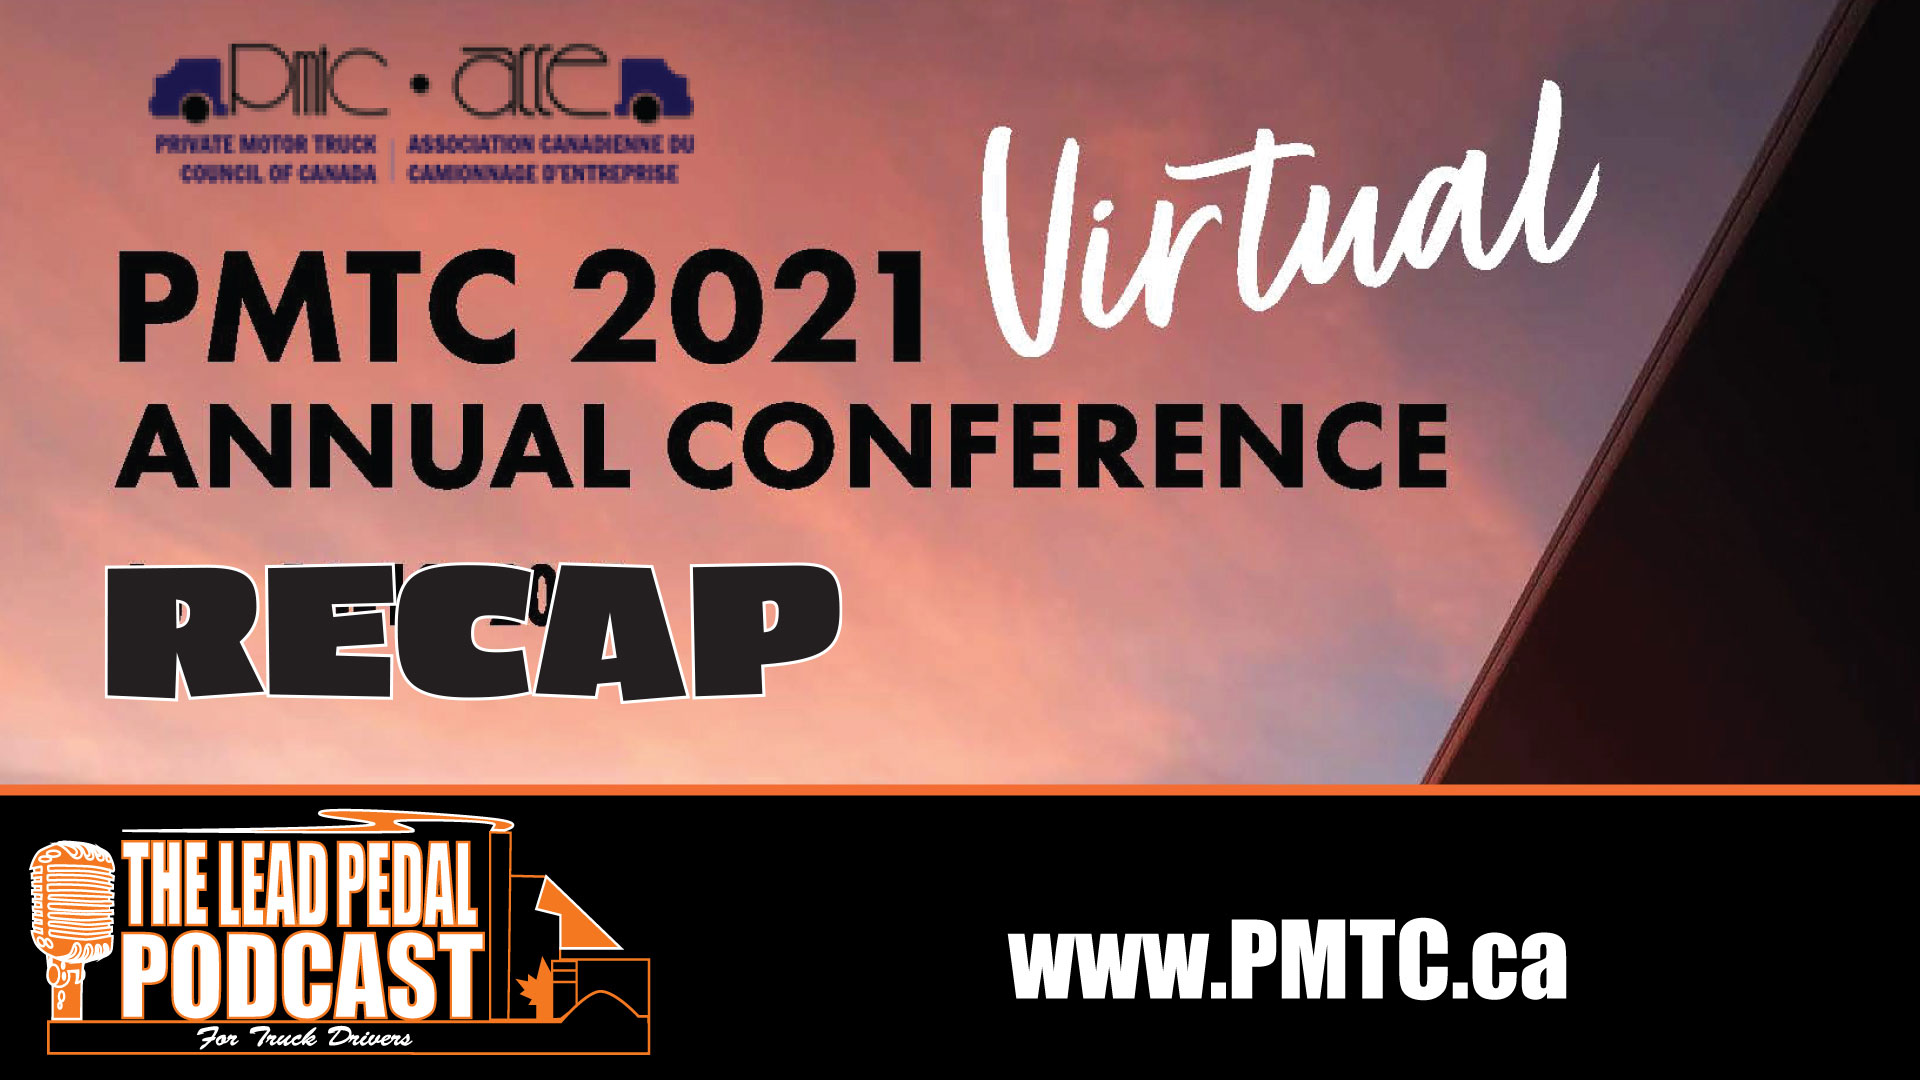 LP653 Recapping the PMTC Conference 2021